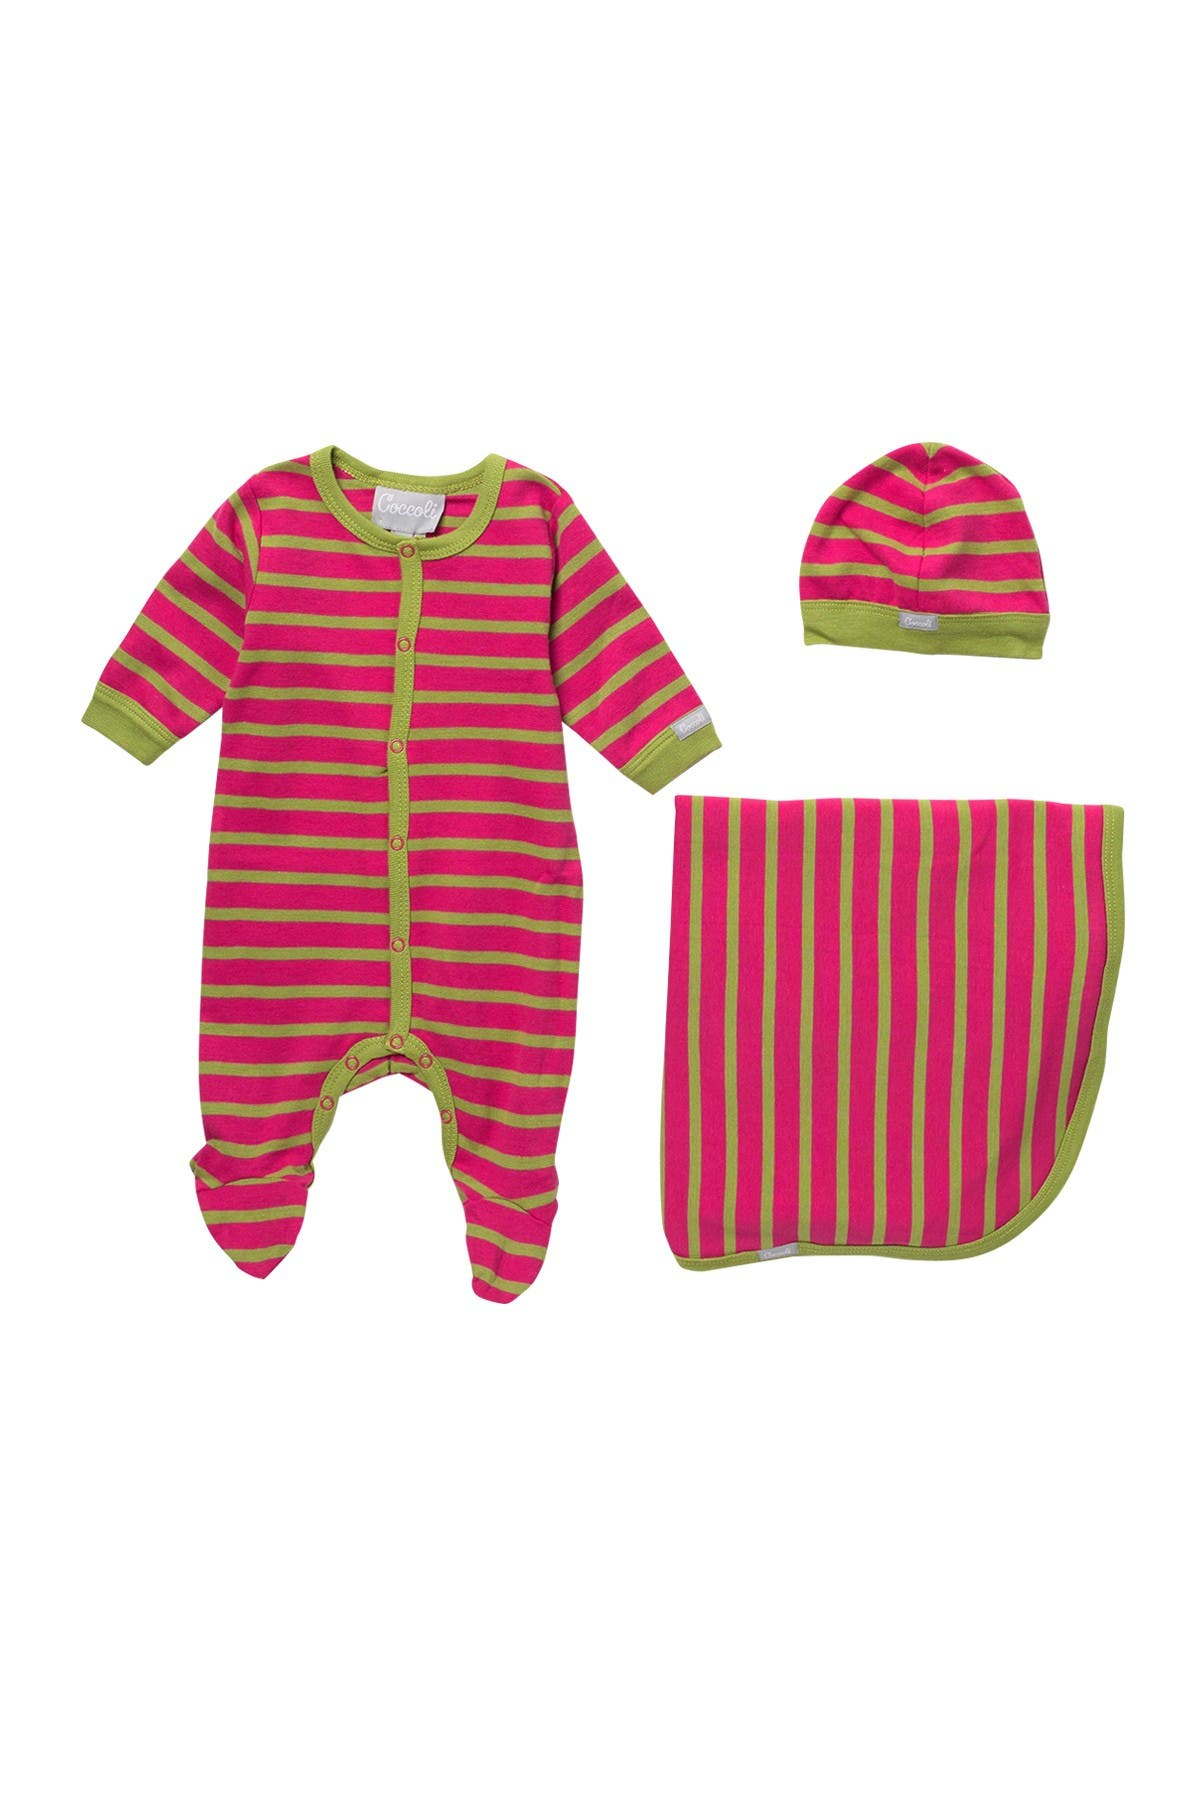 Image of Coccoli Cotton Stripe Print Footie, Cap, & Blanket 3-Piece Set